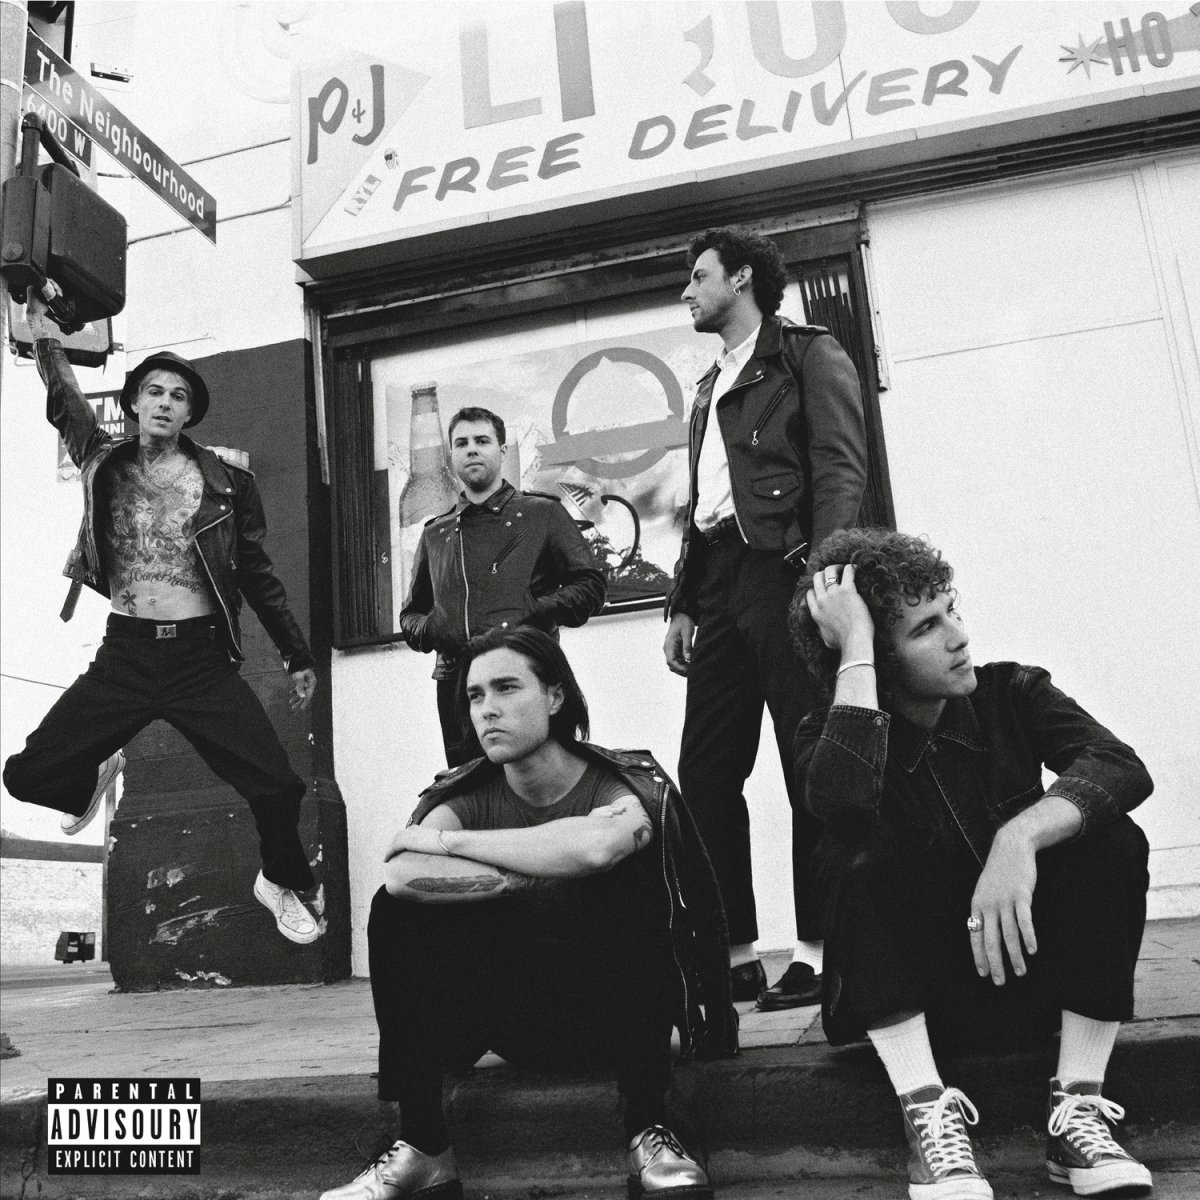 Vinilo : The Neighbourhood - The Neighbourhood (180 Gram Vinyl, Gatefold LP Jacket, Download Insert, 2PC)